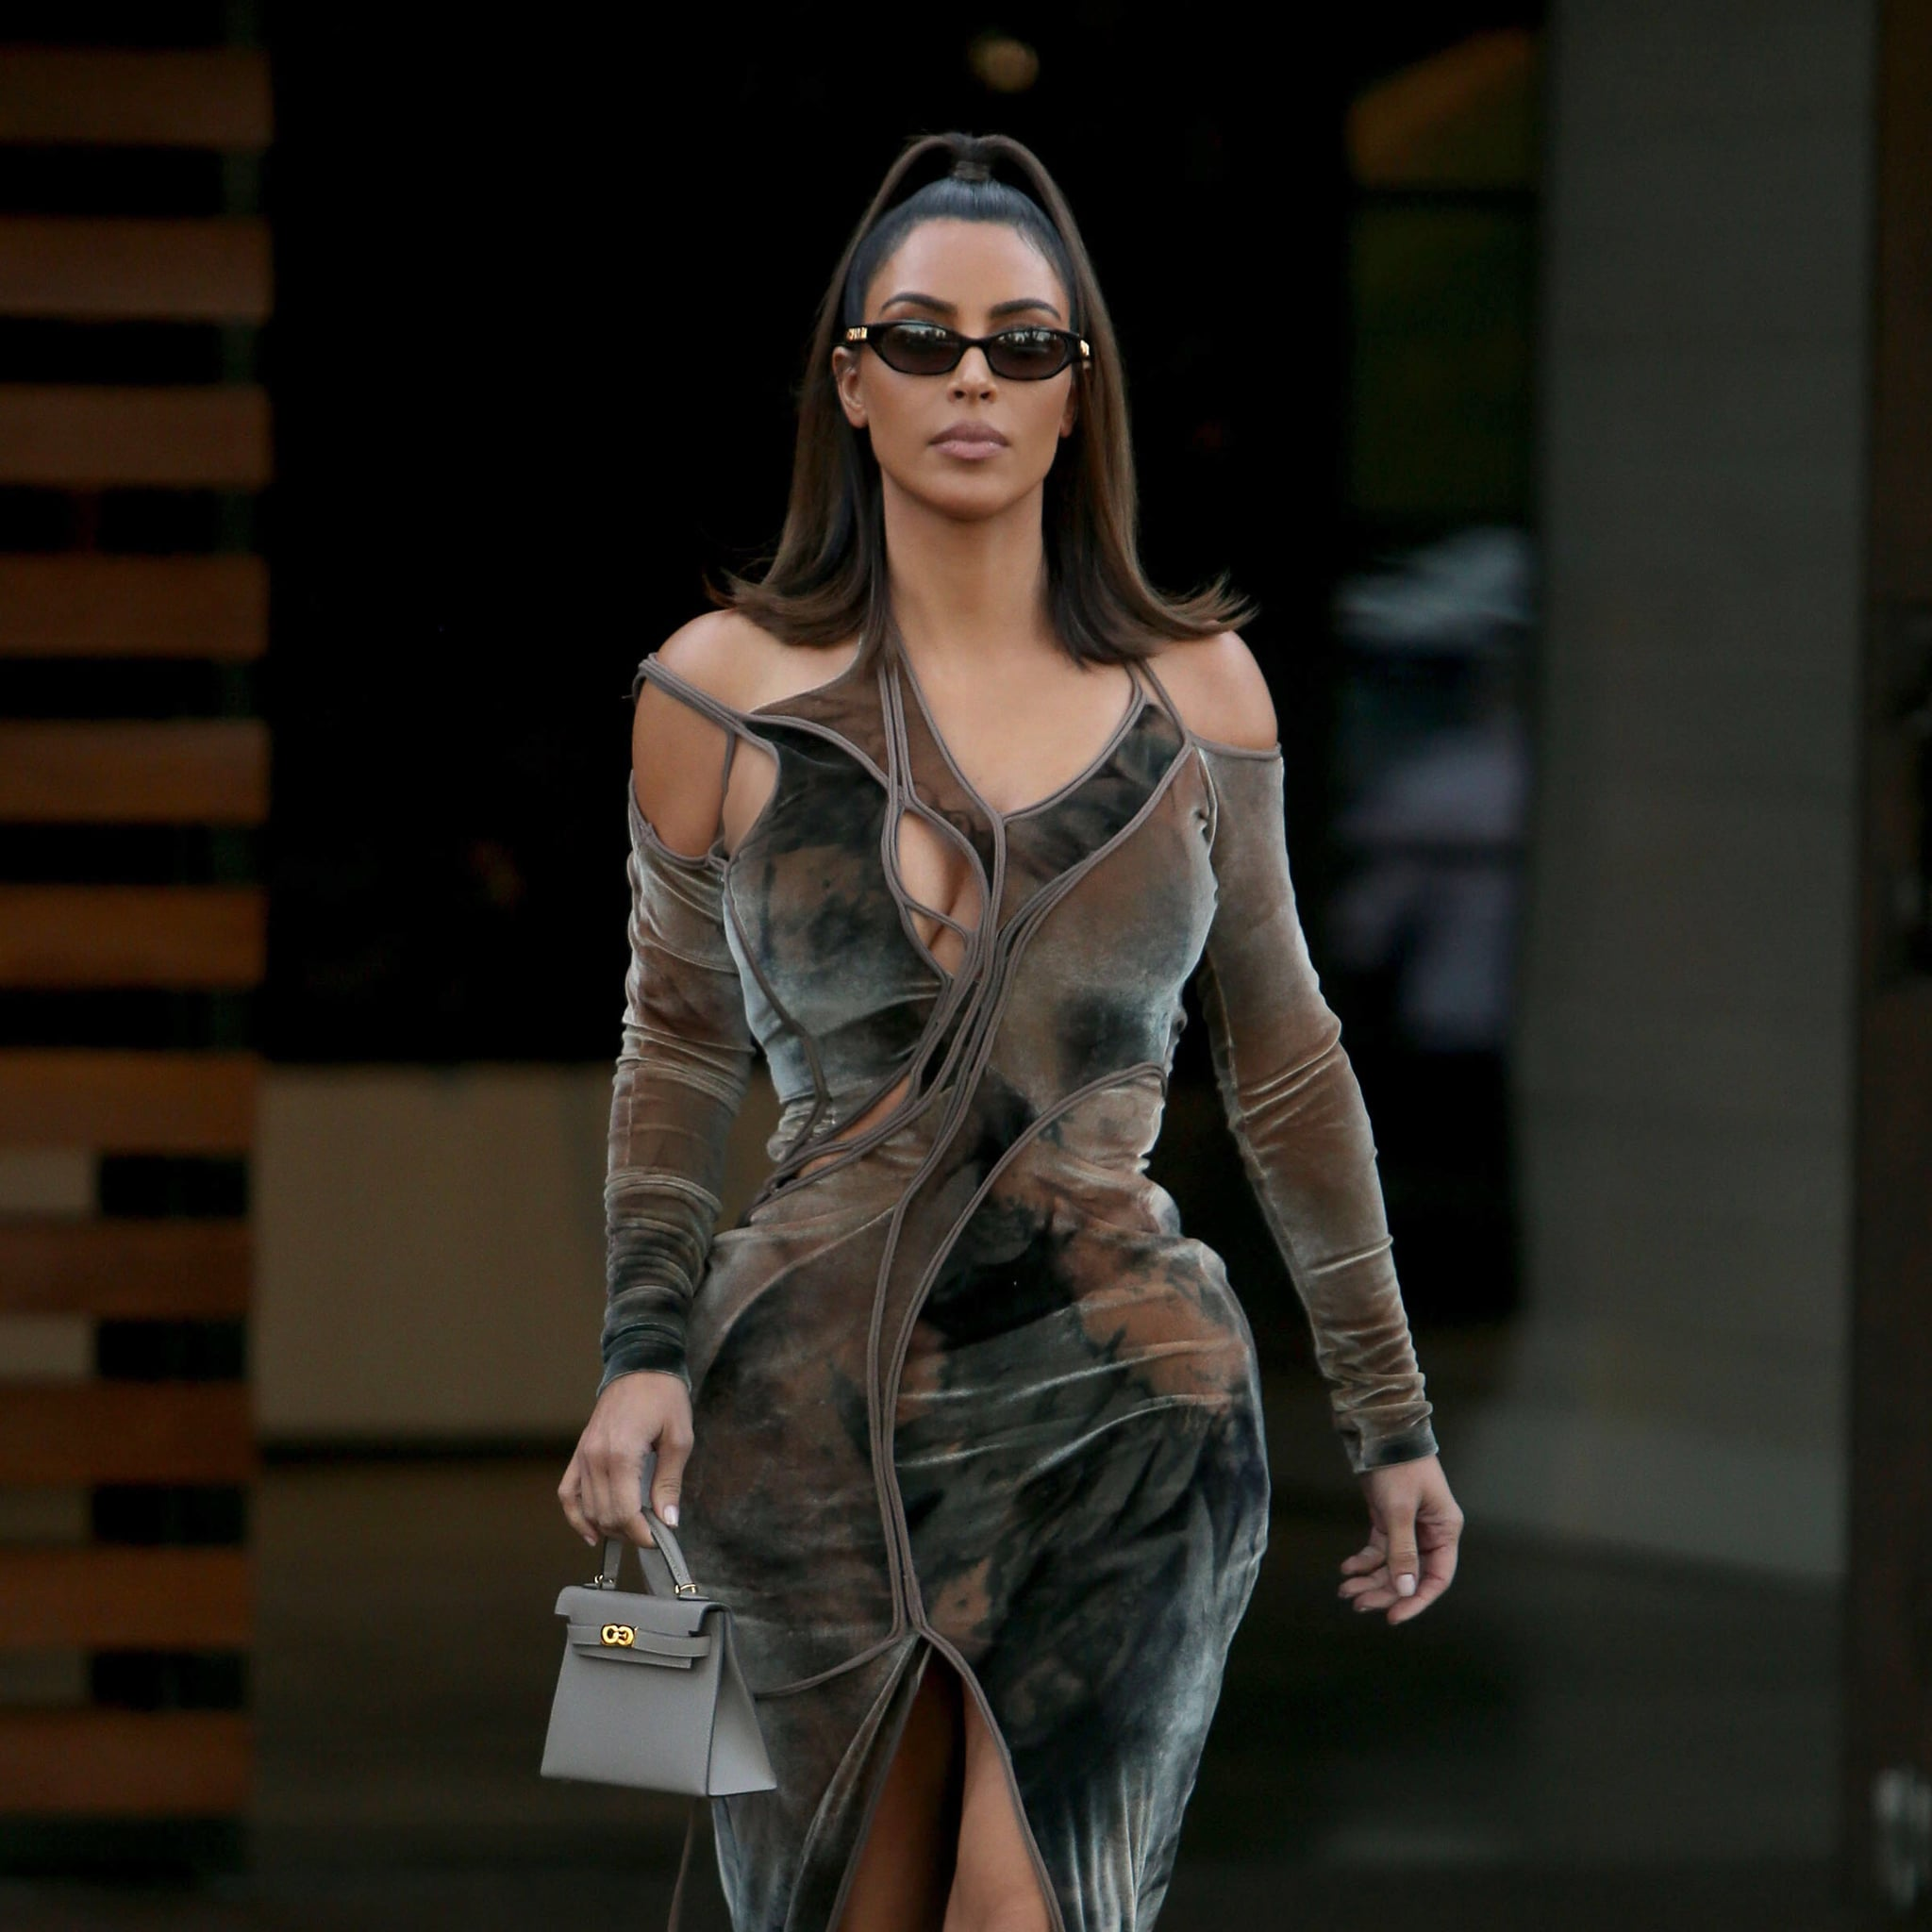 Kim Kardashian S Velvet Cutout Dress Instagram 2019 Popsugar Fashion